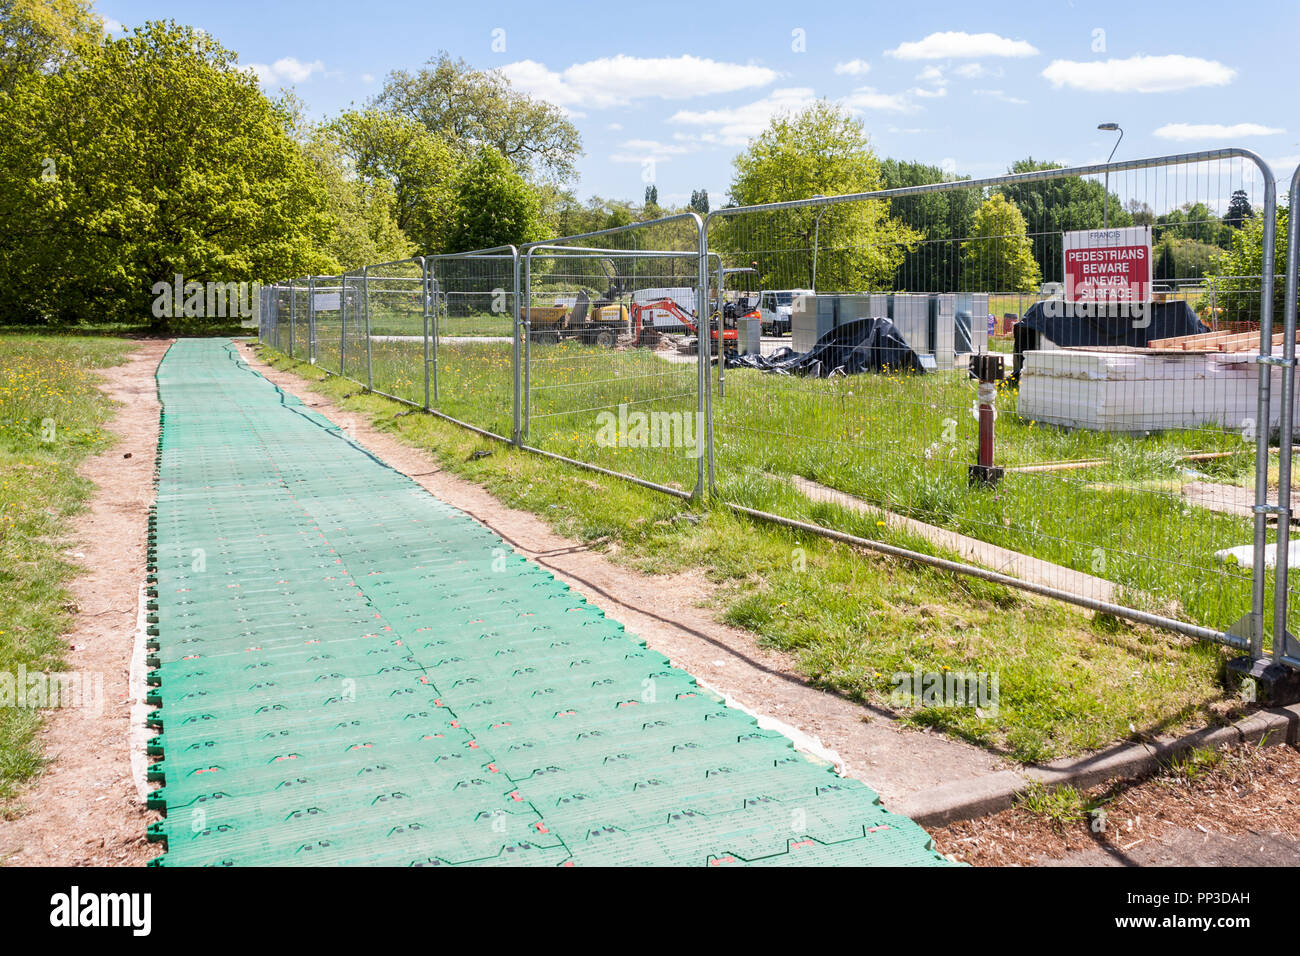 Temporary trackway by Heras fencing securing a construction site - Stock Image